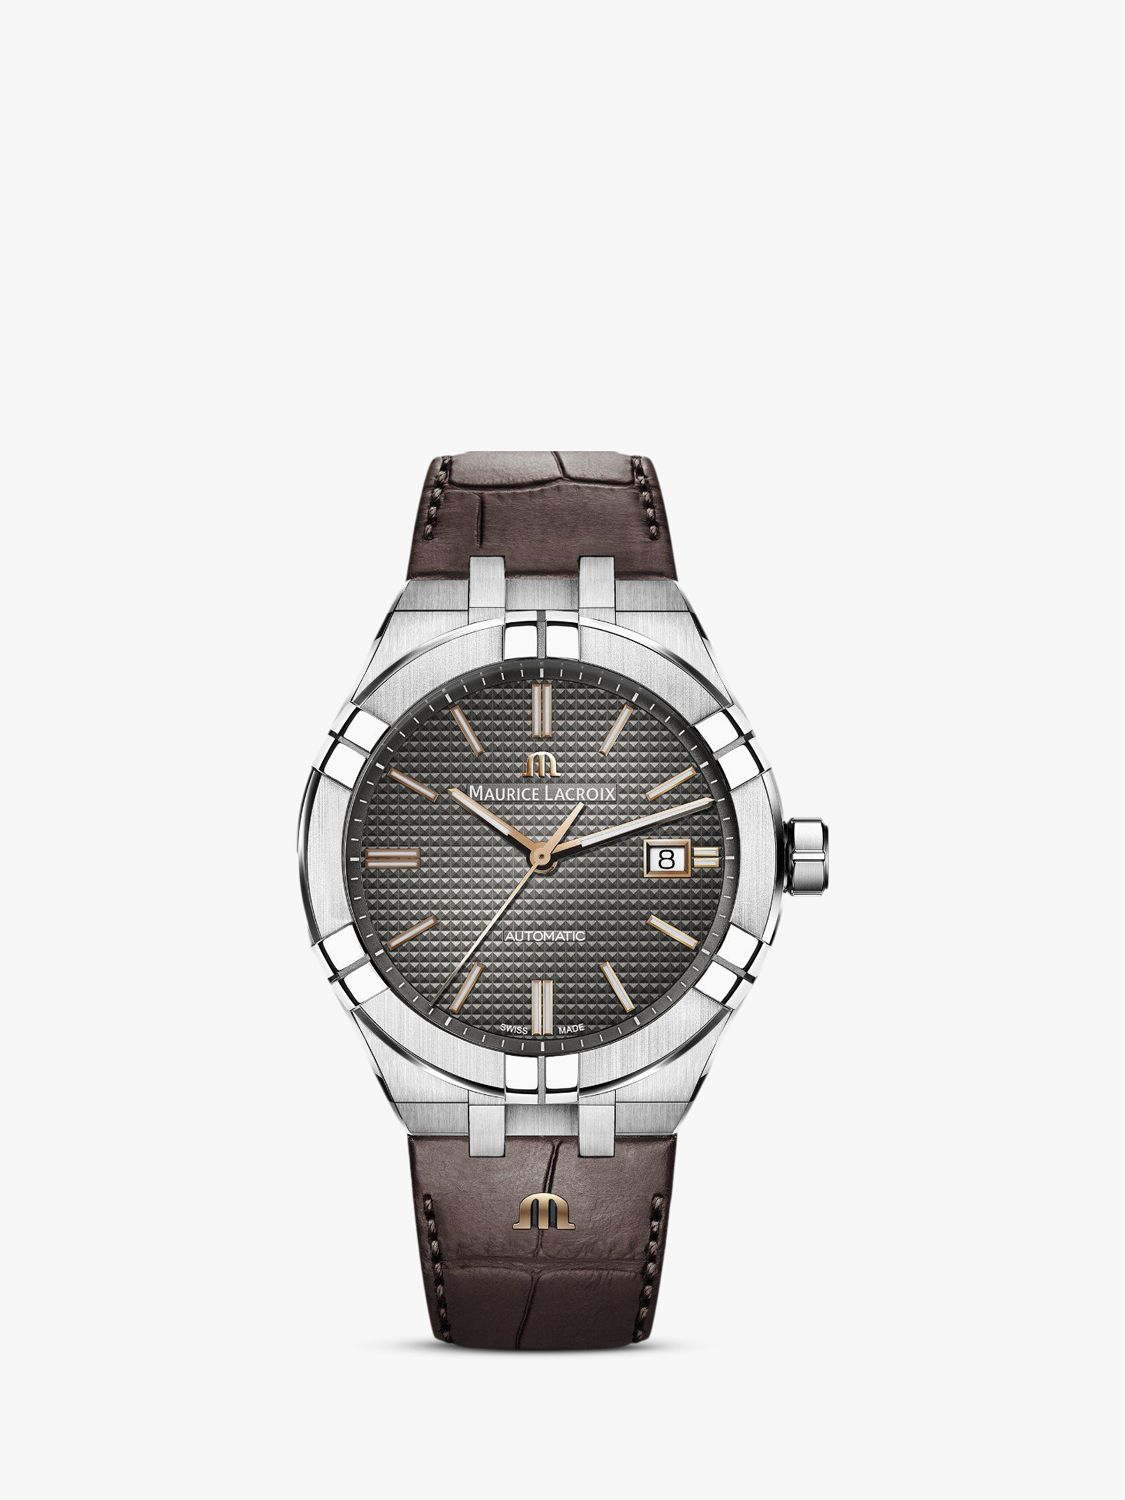 Maurice Lacroix Maurice Lacroix AI6008-SS001-331-1 Men's Aikon Date Leather Strap Watch, Brown/Silver